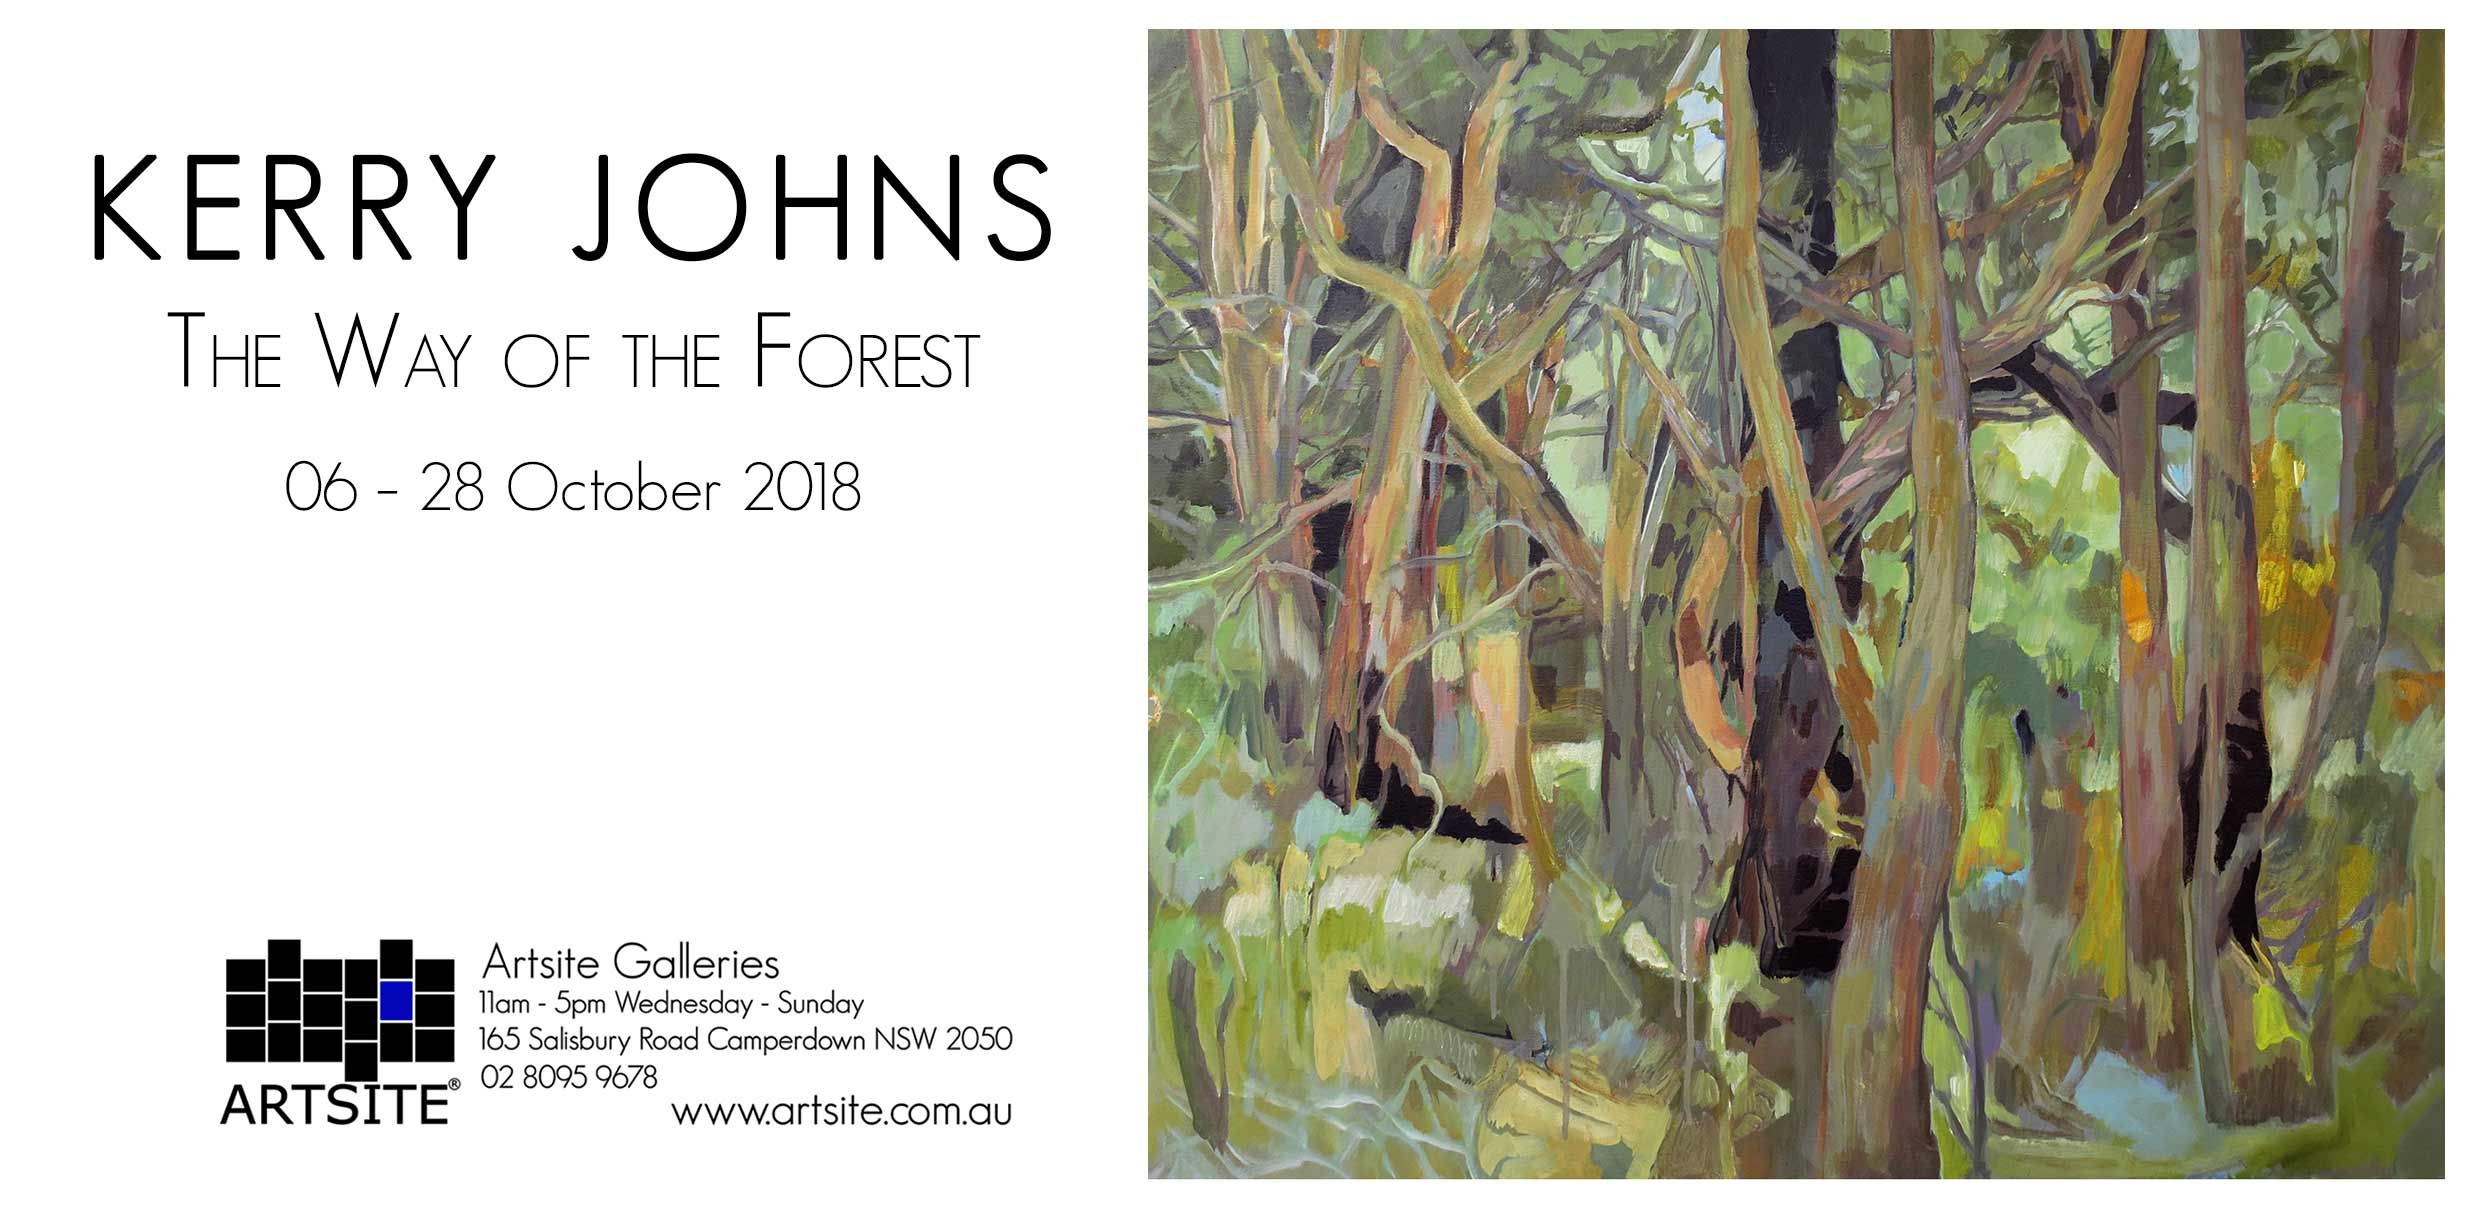 Artsite Galleries Exhibition | Kerry Johns | The Way of the Forest | 06 - 28 October 2018